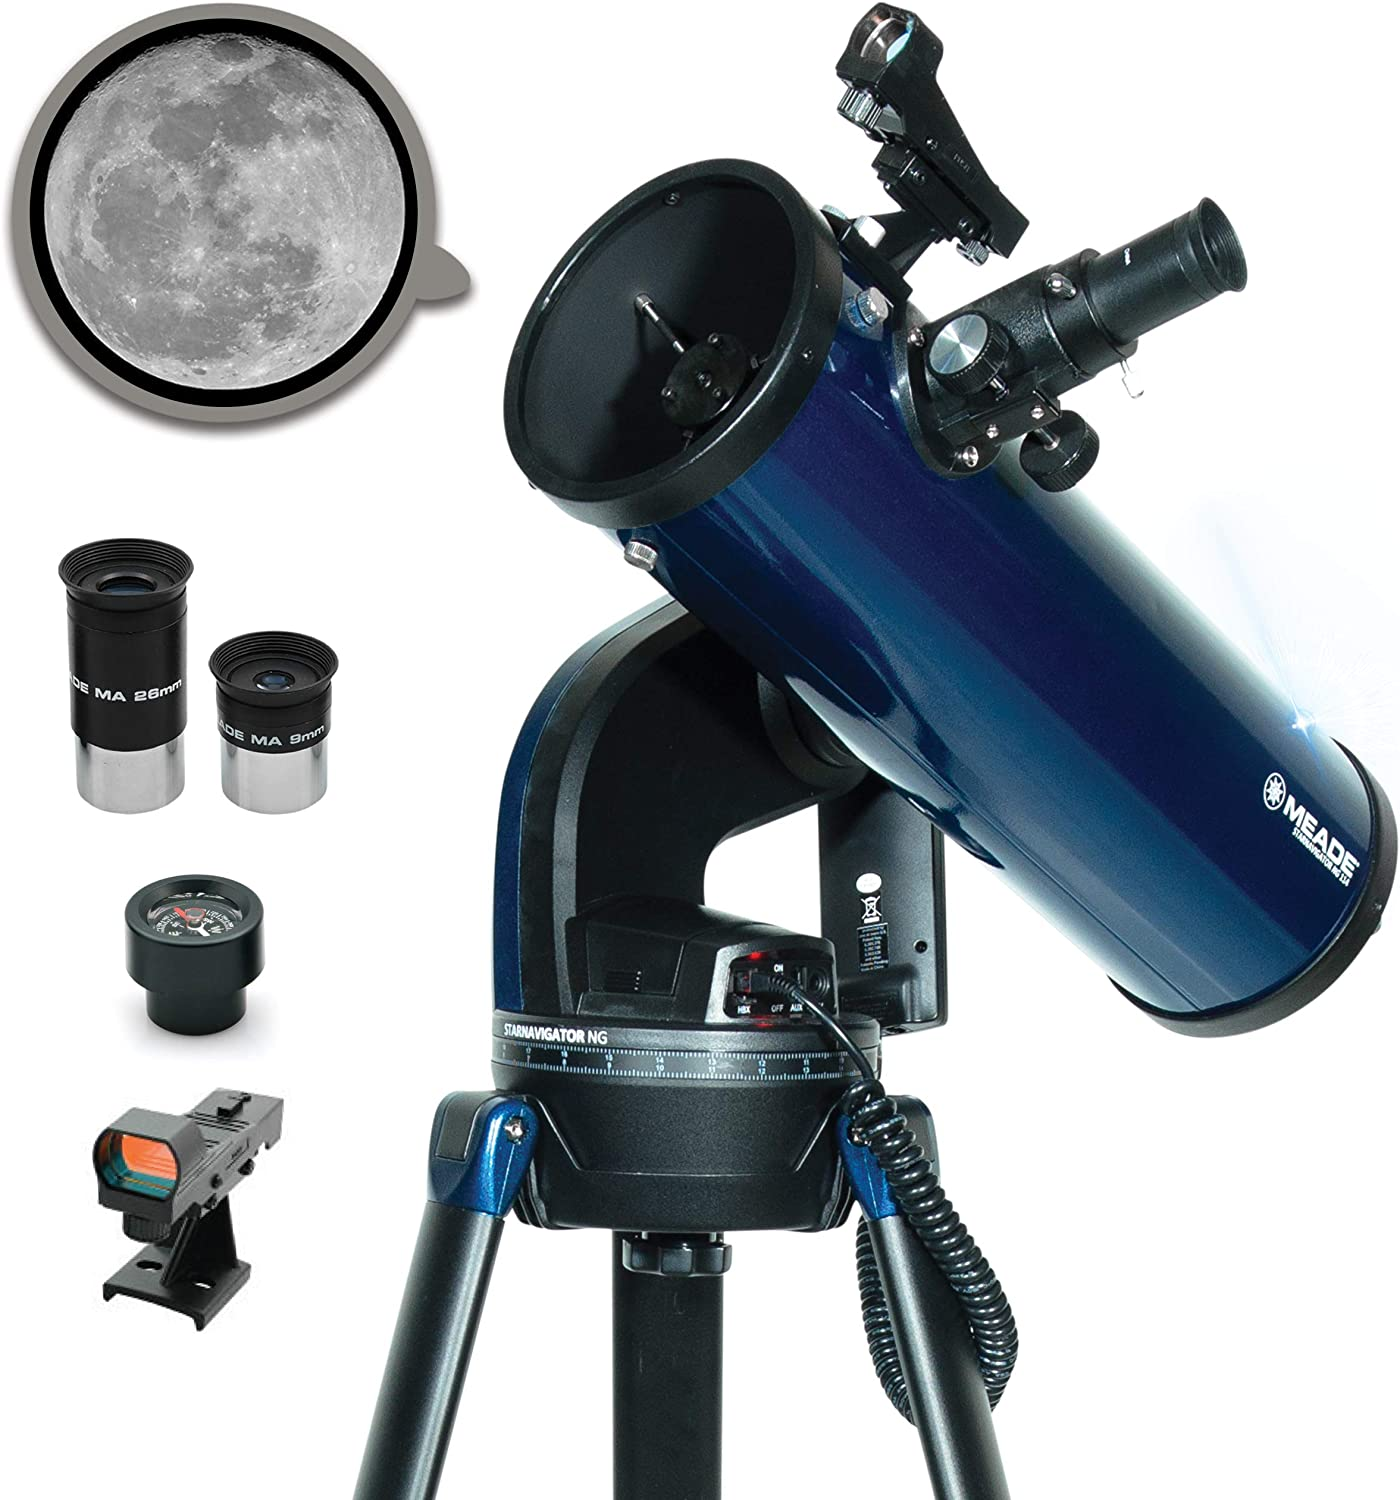 Family Backyard Activities Mount /& Tripod Included StarNavigator NG 114mm Reflecting Computerized GoTo Astronomy Telescope w//AudioStar/® 30,000+ Object-Database /& Audio Tours Meade Instruments